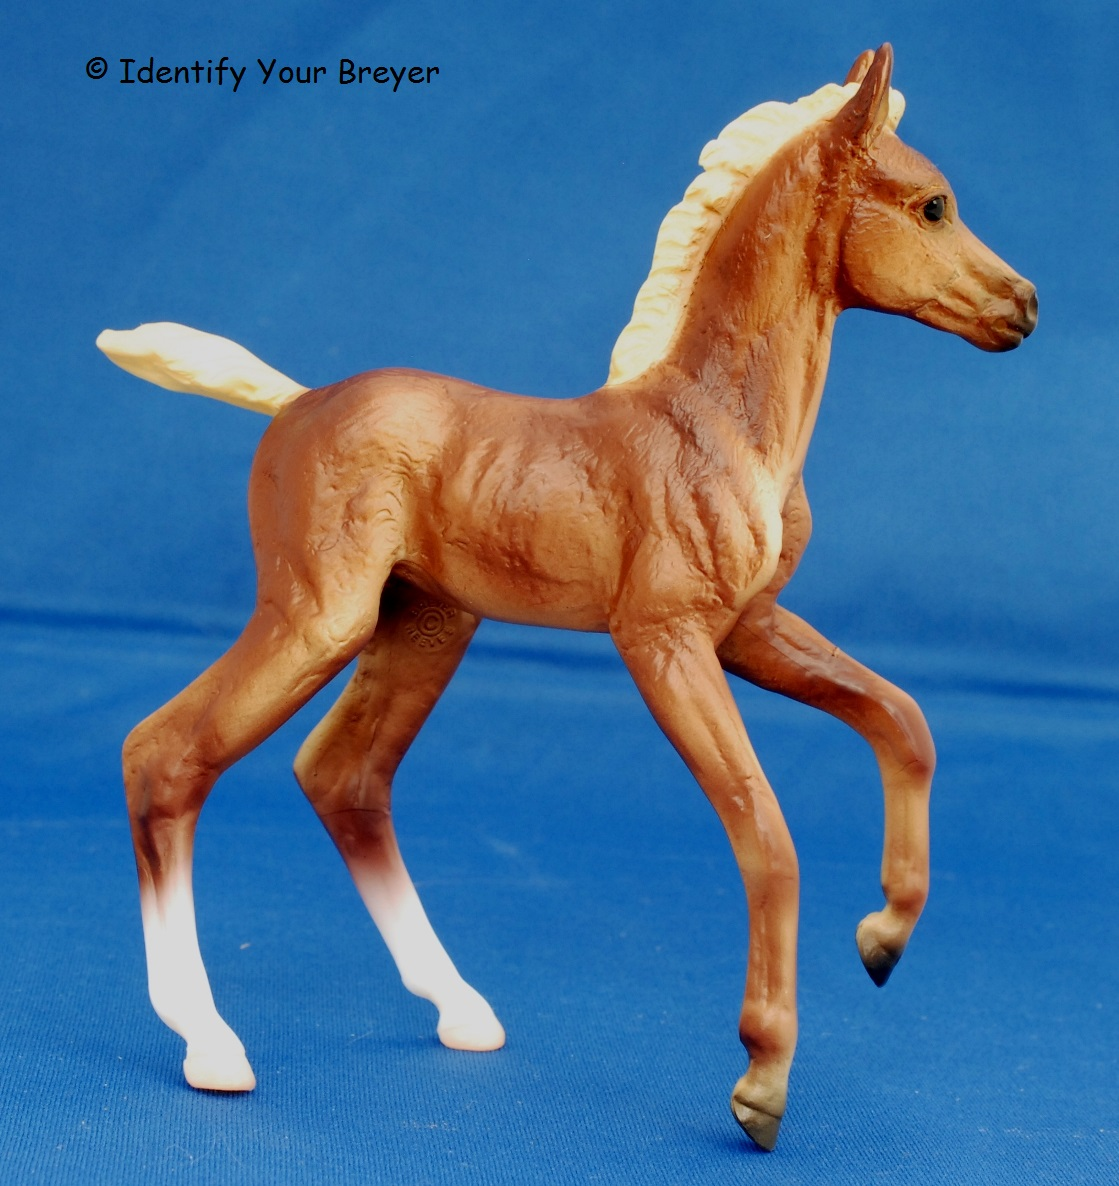 identify your breyer warmblood foal